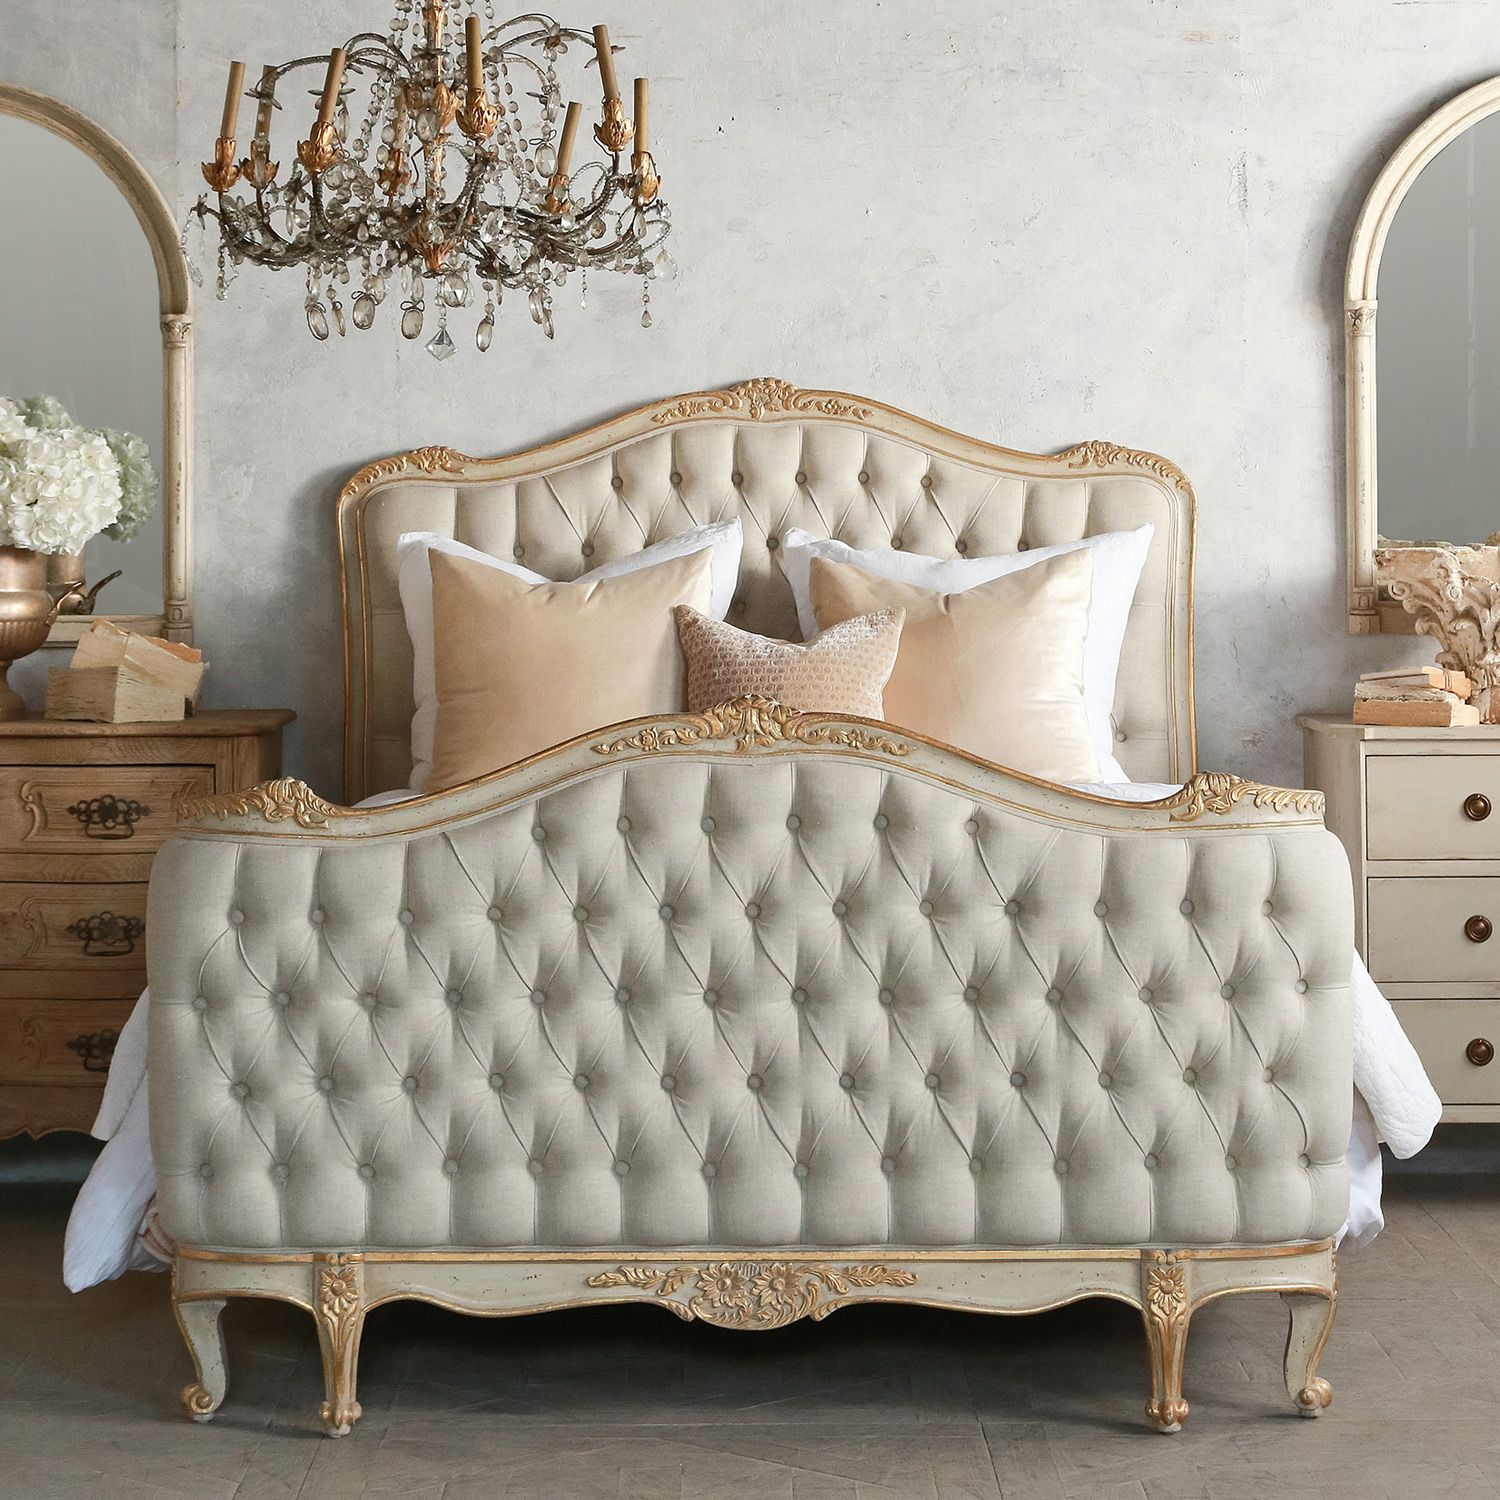 Bedroom Mid Century Modern Upholstered Headboard With